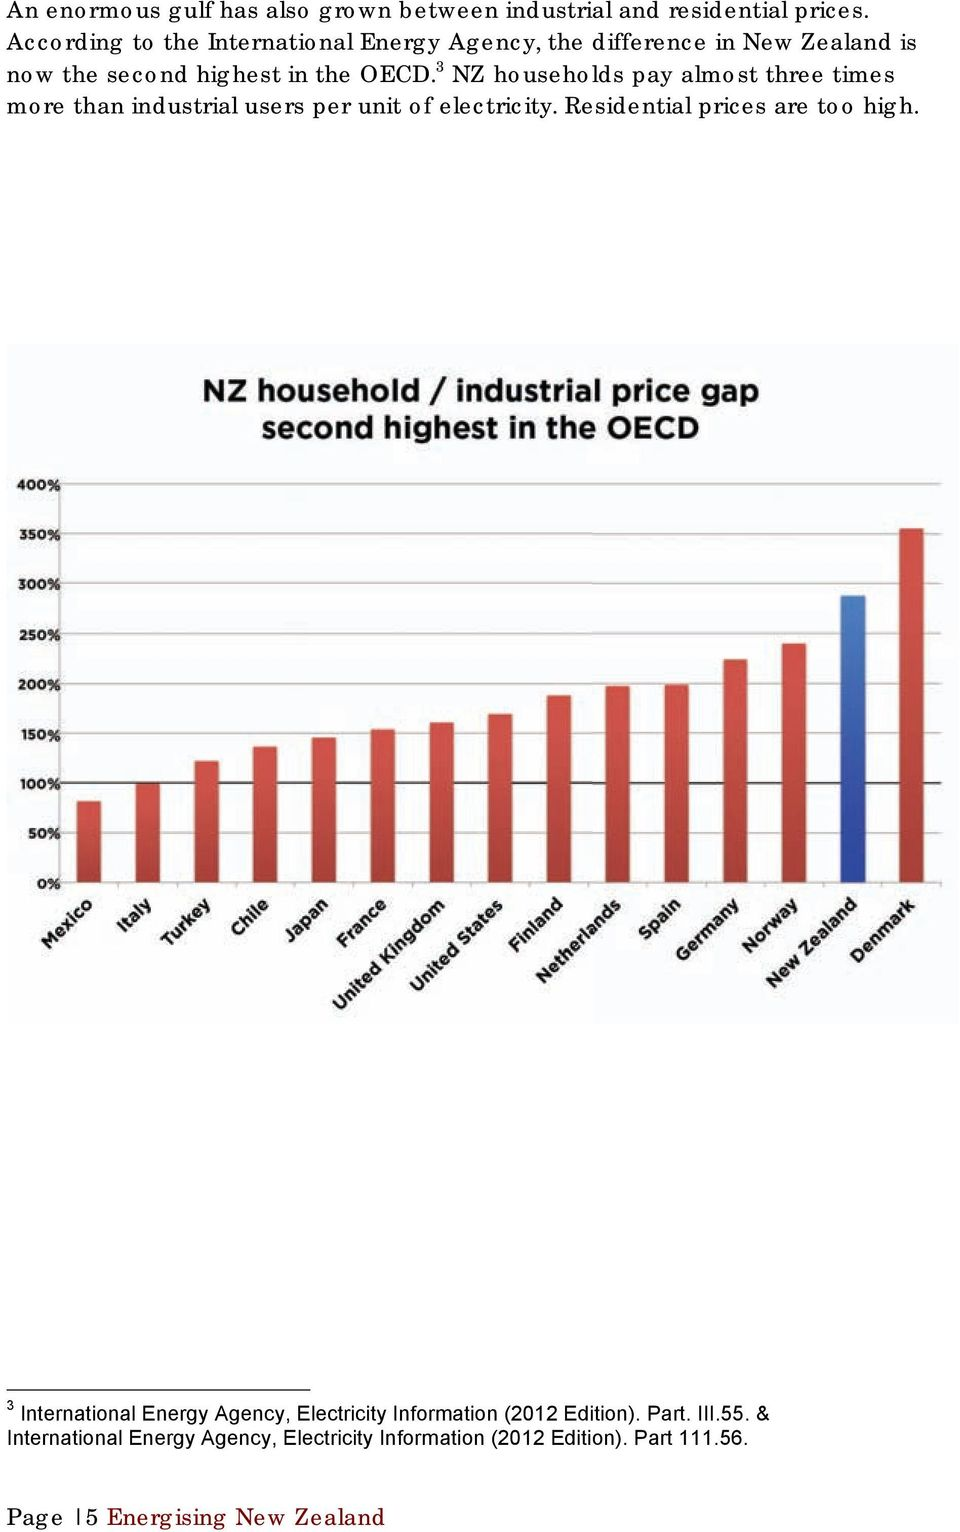 3 NZ households pay almost three times more than industrial users per unit of electricity. Residential prices are too high.